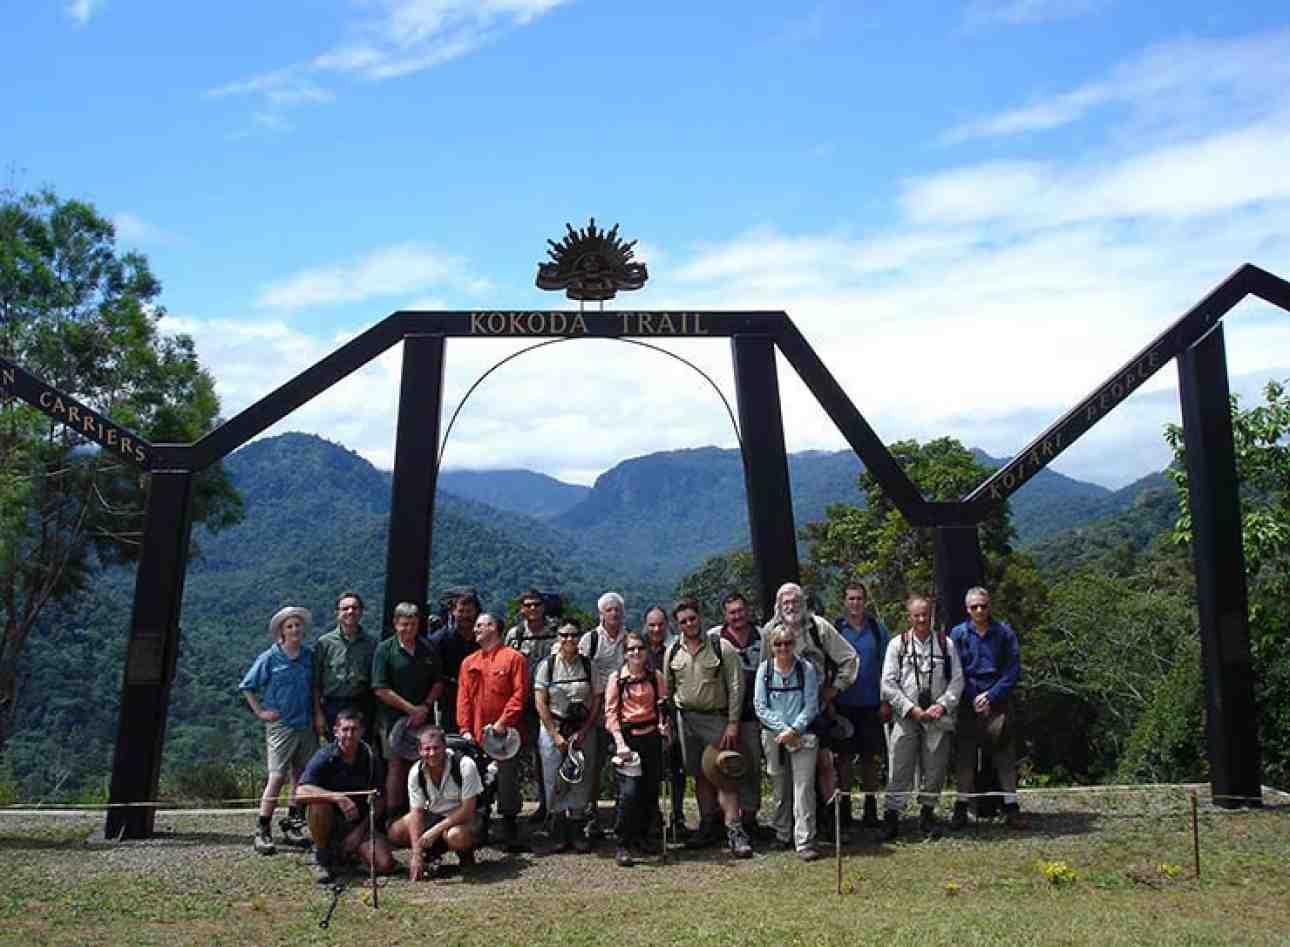 The walk along the Kokoda track can be done either way. From south to north the walk begins here at Owers' Corner and immediately descends into the valley of the Goldie River. Imita Ridge is visible in the distance. [Photo: Peter Williams]